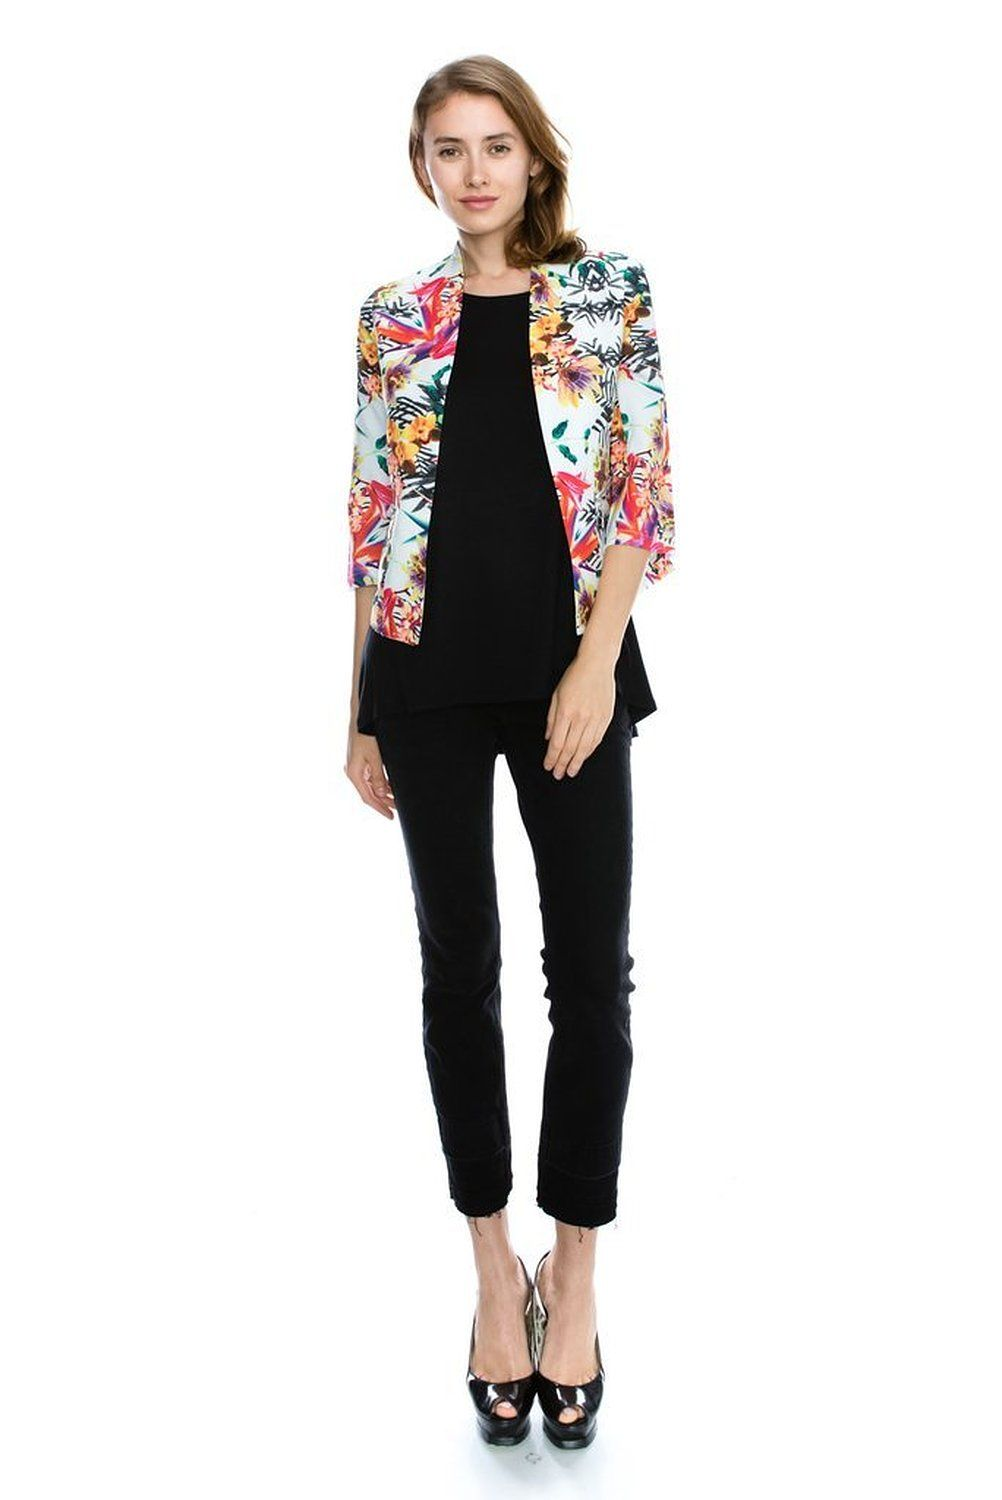 Sue&Caleb Womens floral print multi-color open blazer jacket at Amazon Women's Clothing store: